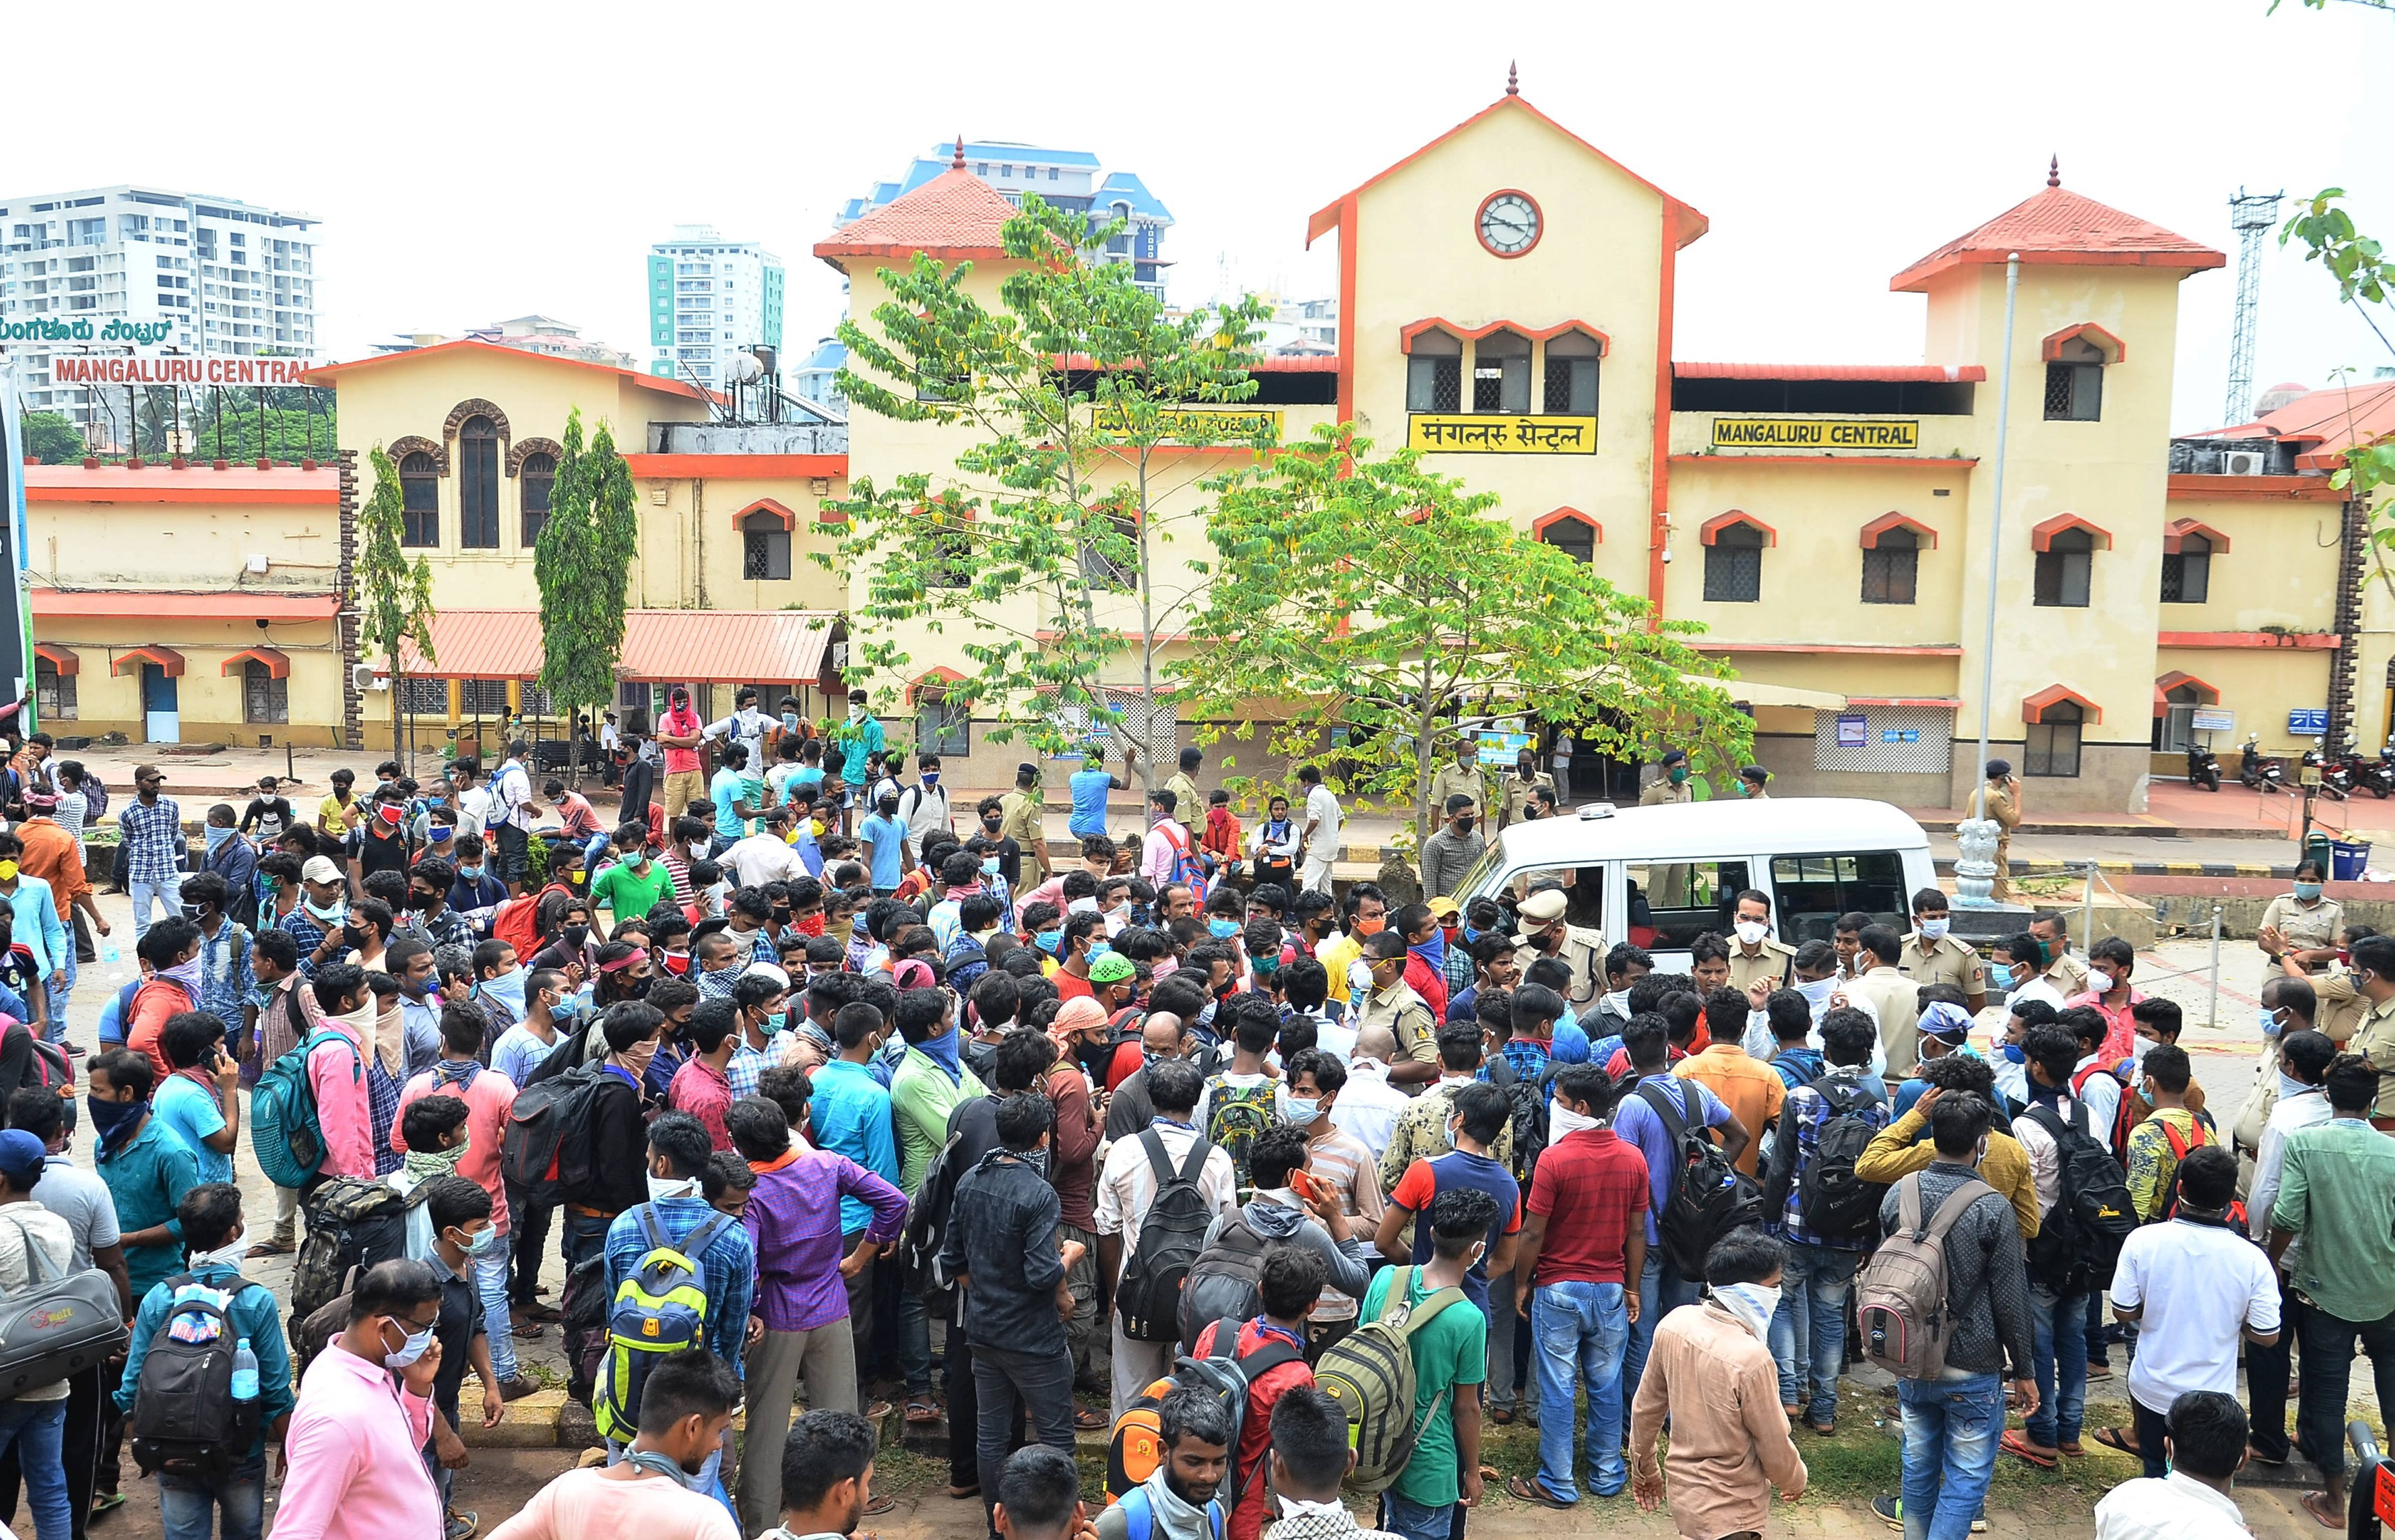 Migrant workers from Jharkhand gather near the Mangalore Central Railway Station